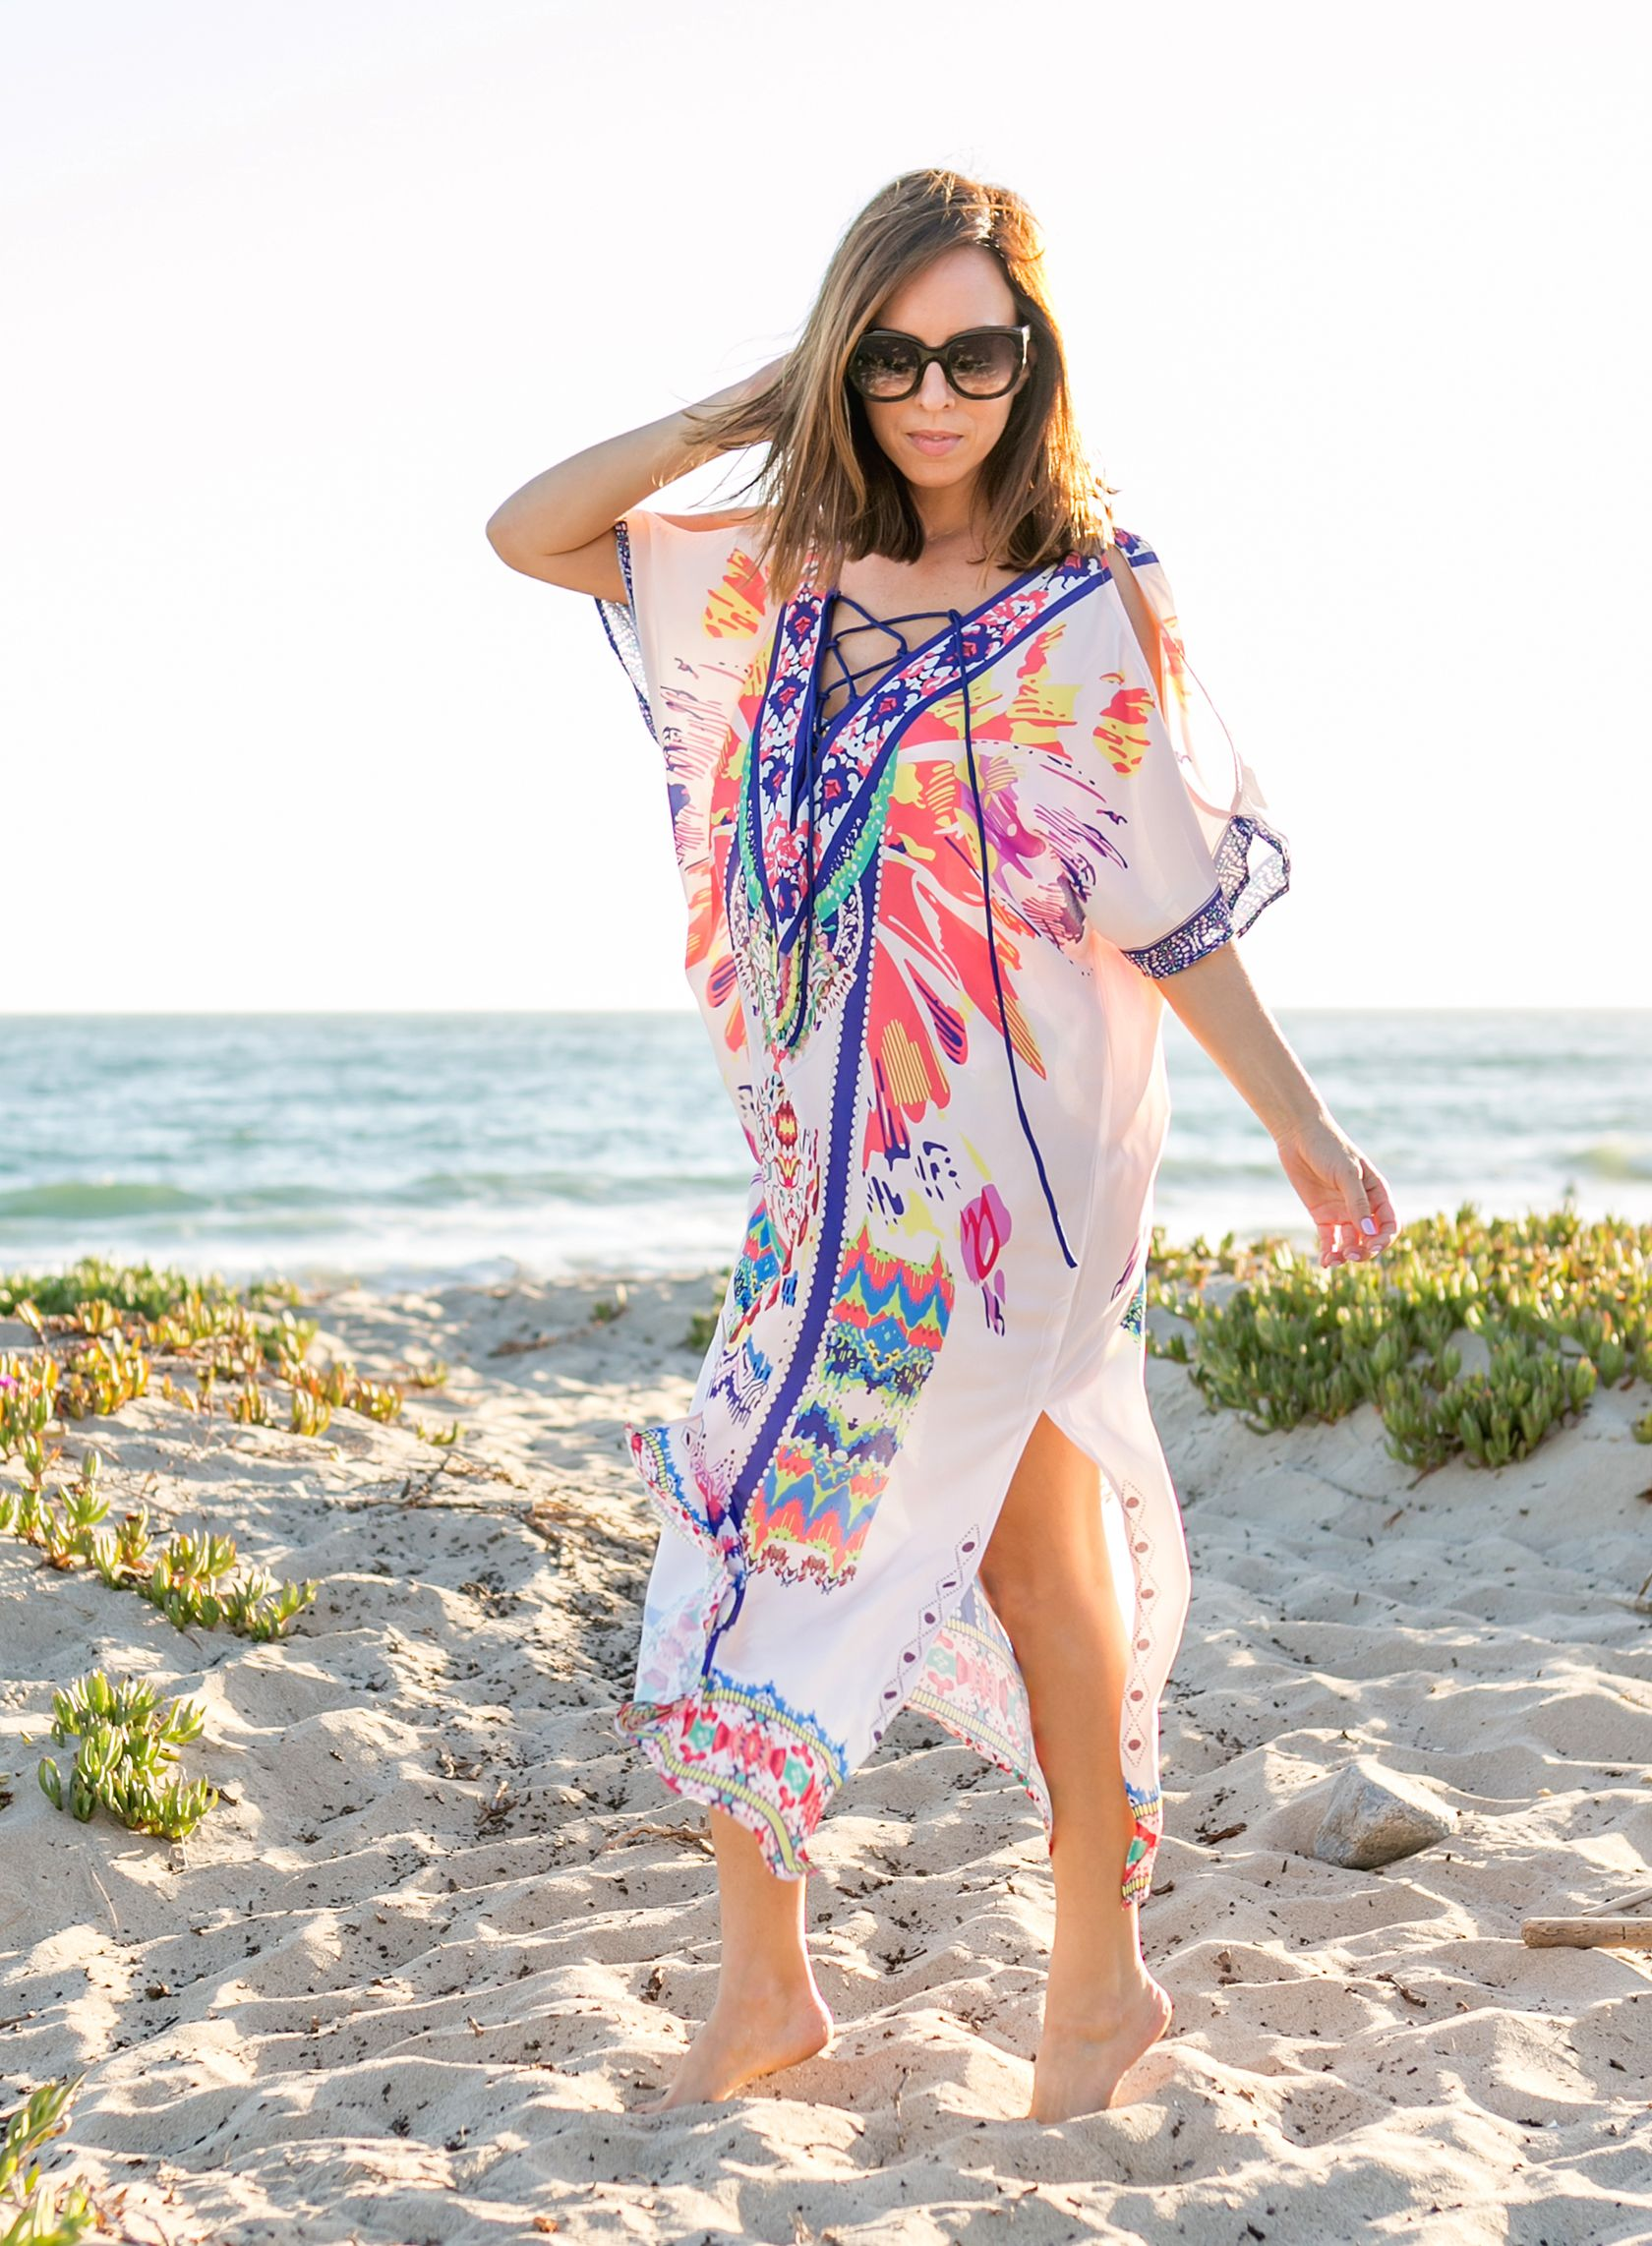 97cf87b16b Sydne Style shows what to wear on a beach vacation in shein printed caftan